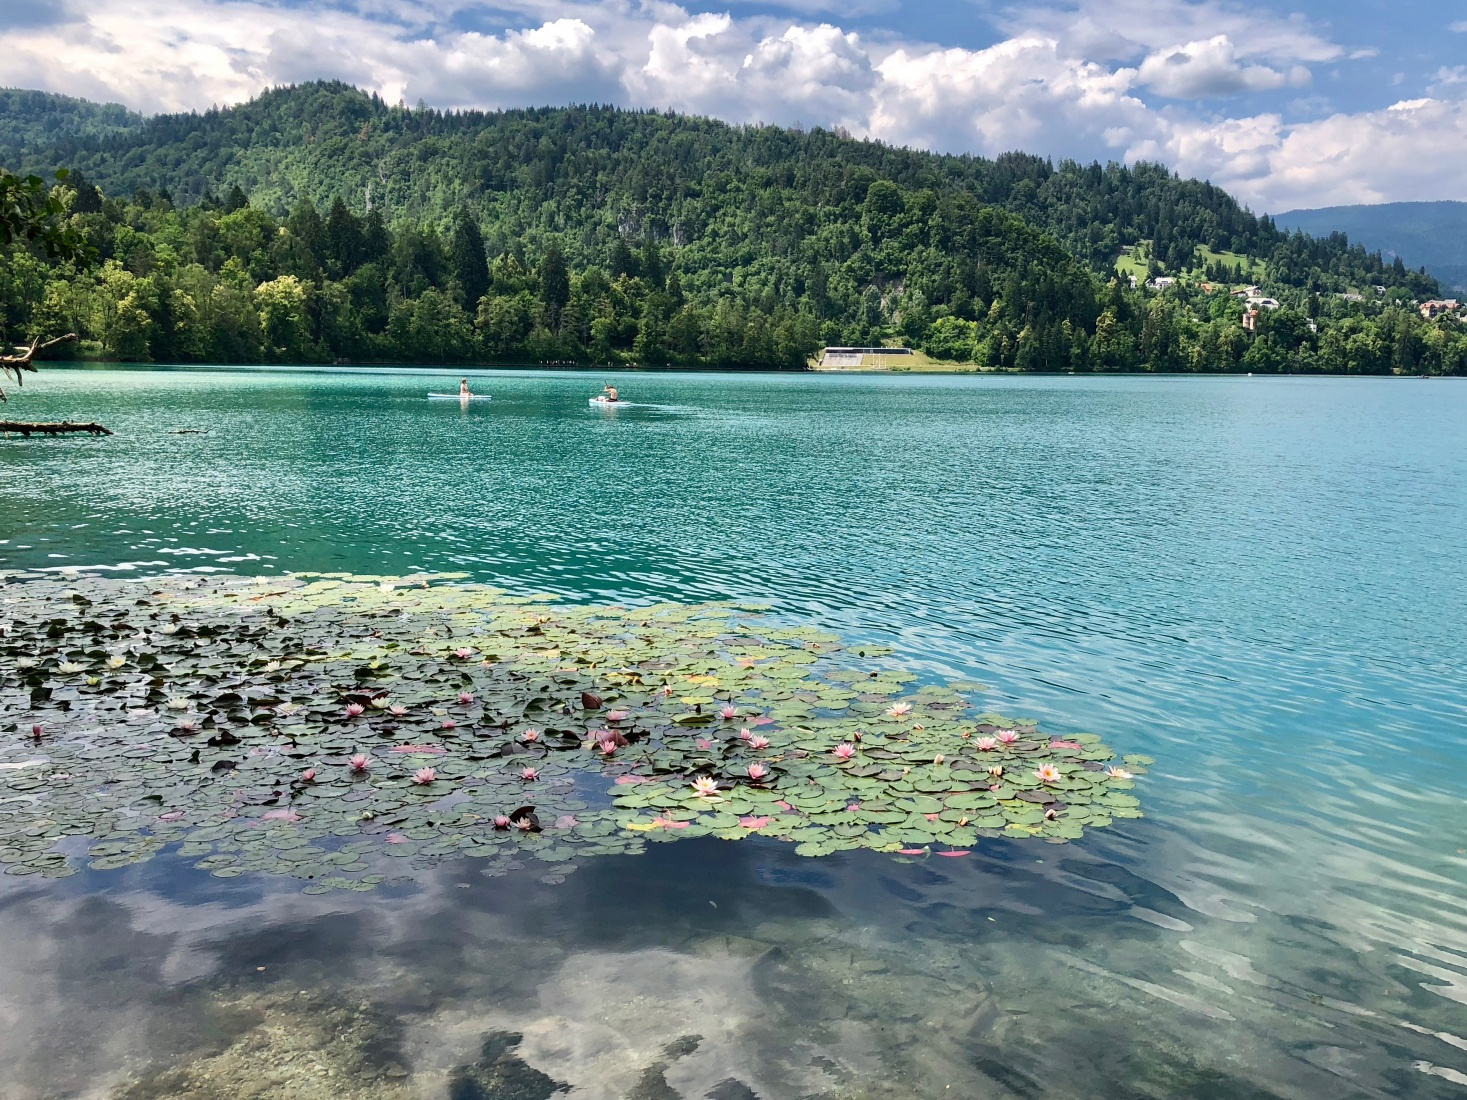 Water lilies on the southwestern shore of Lake Bled, Slovenia.